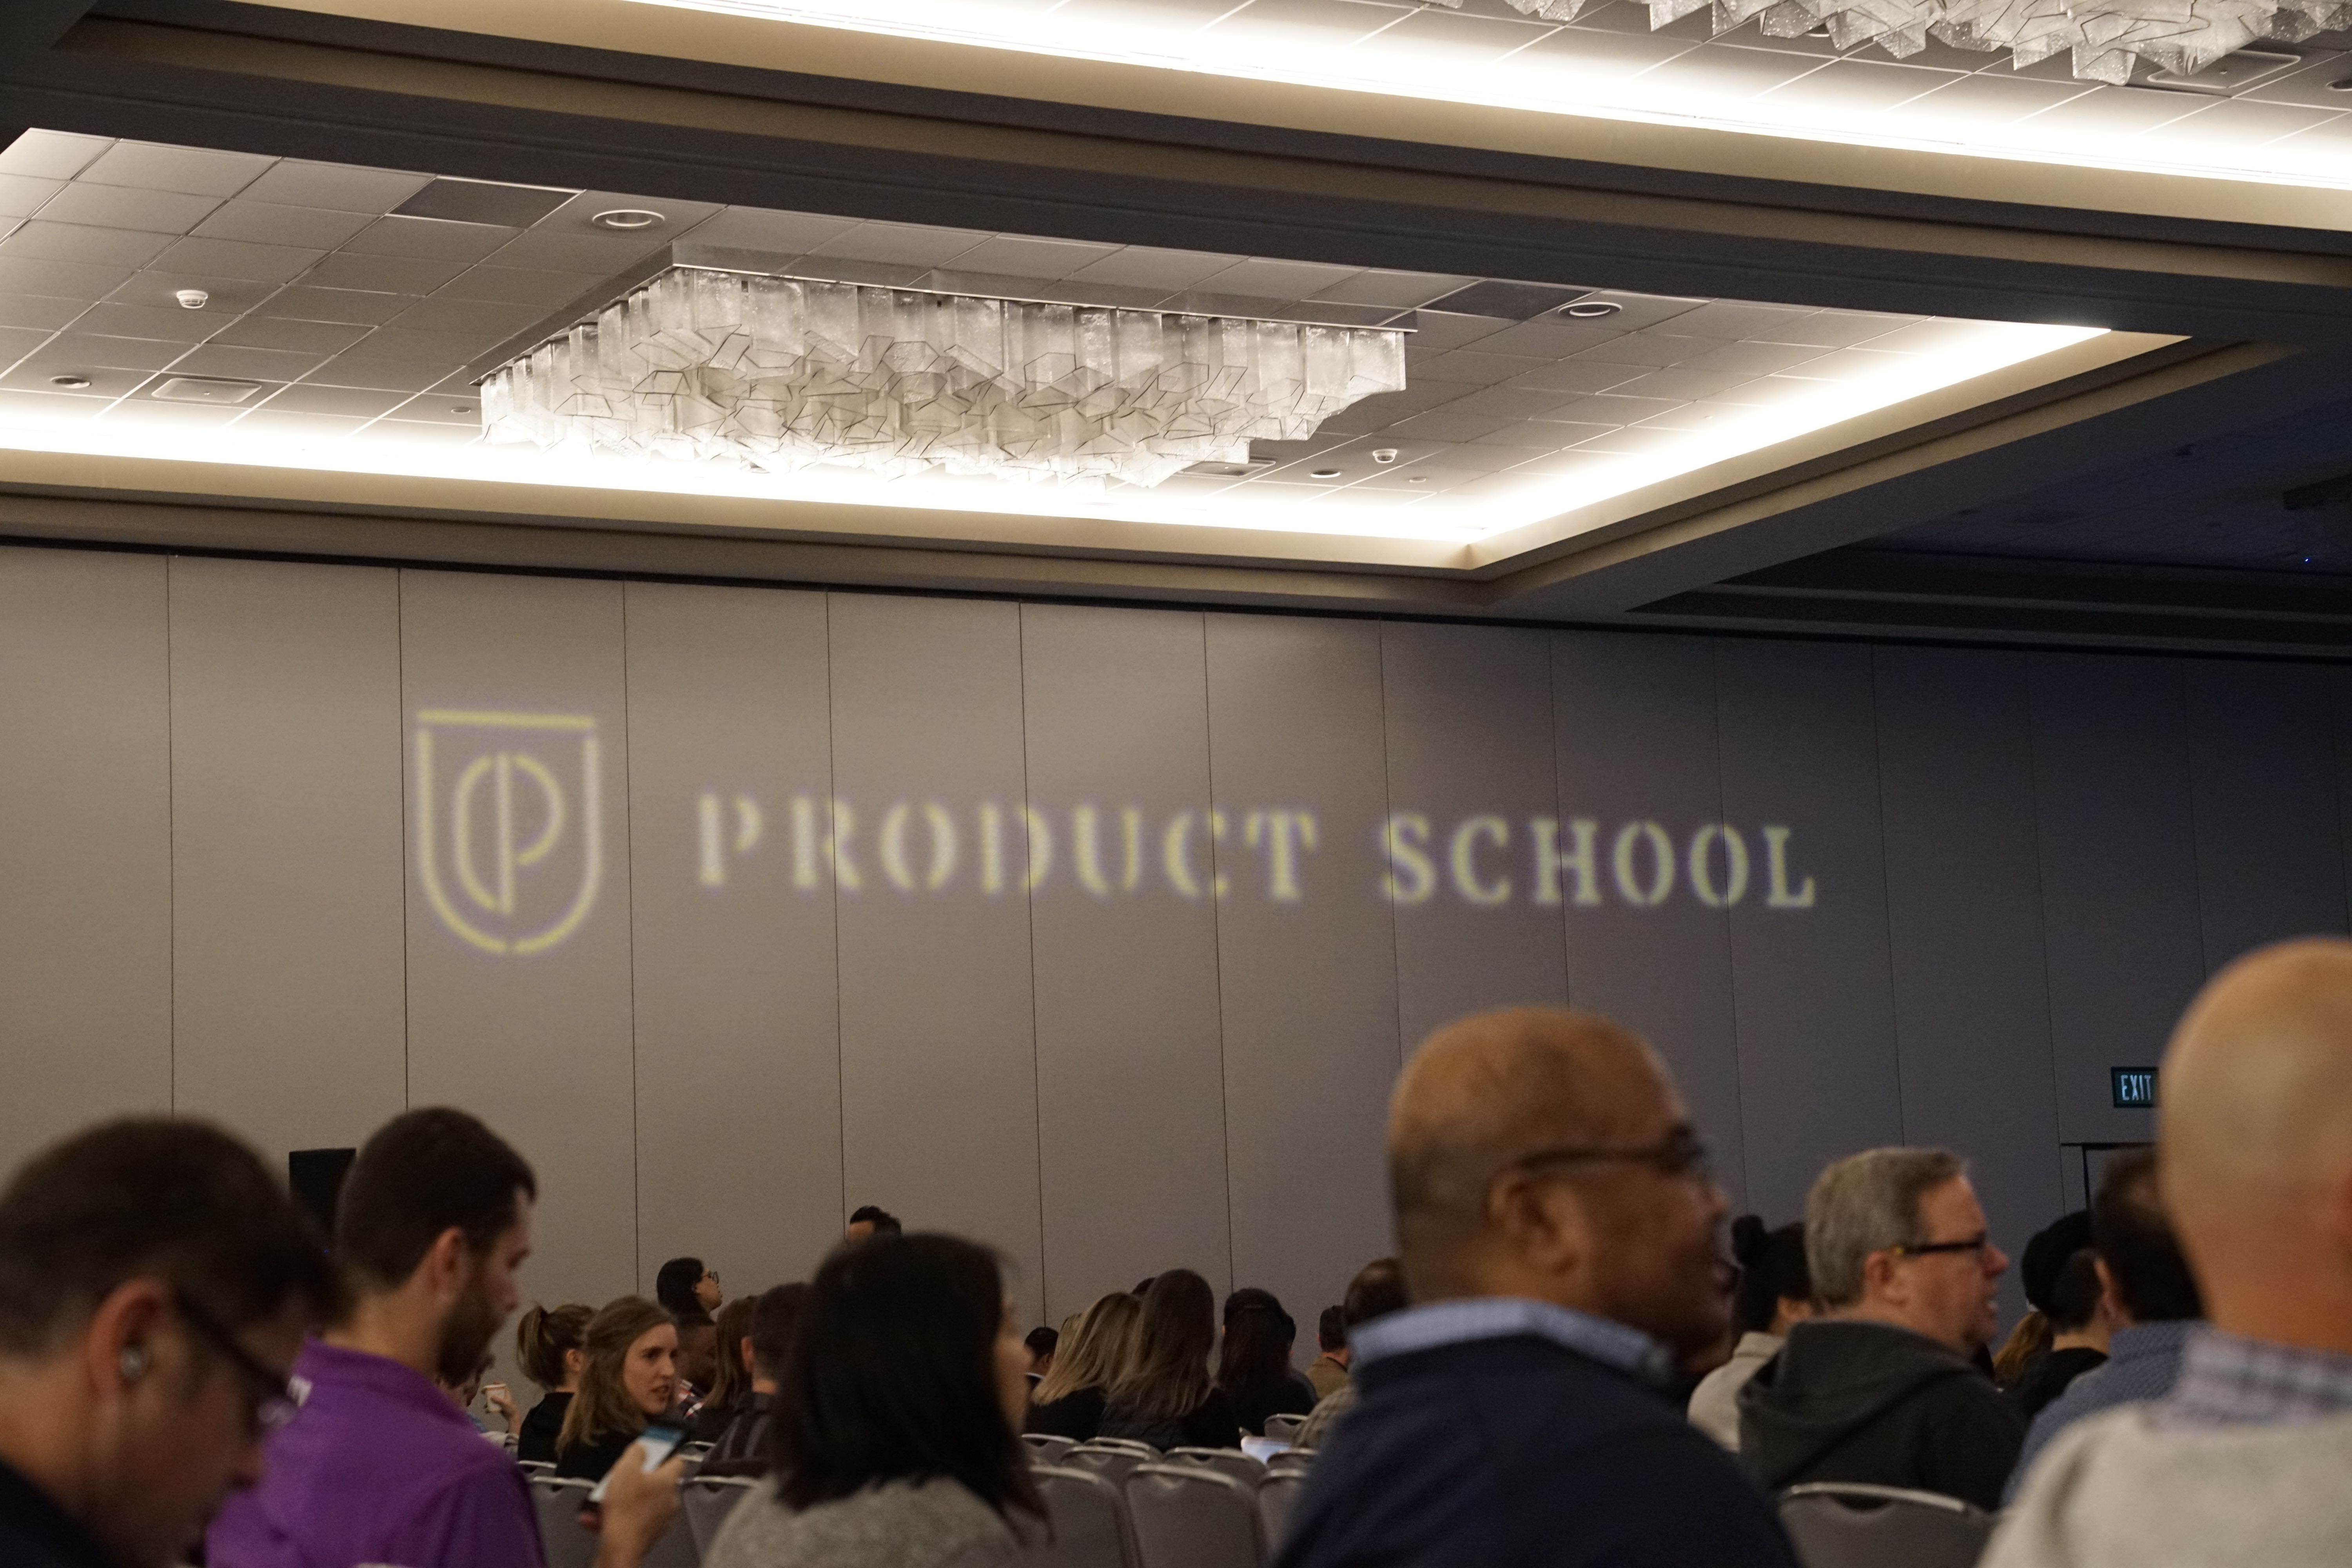 Product School sign